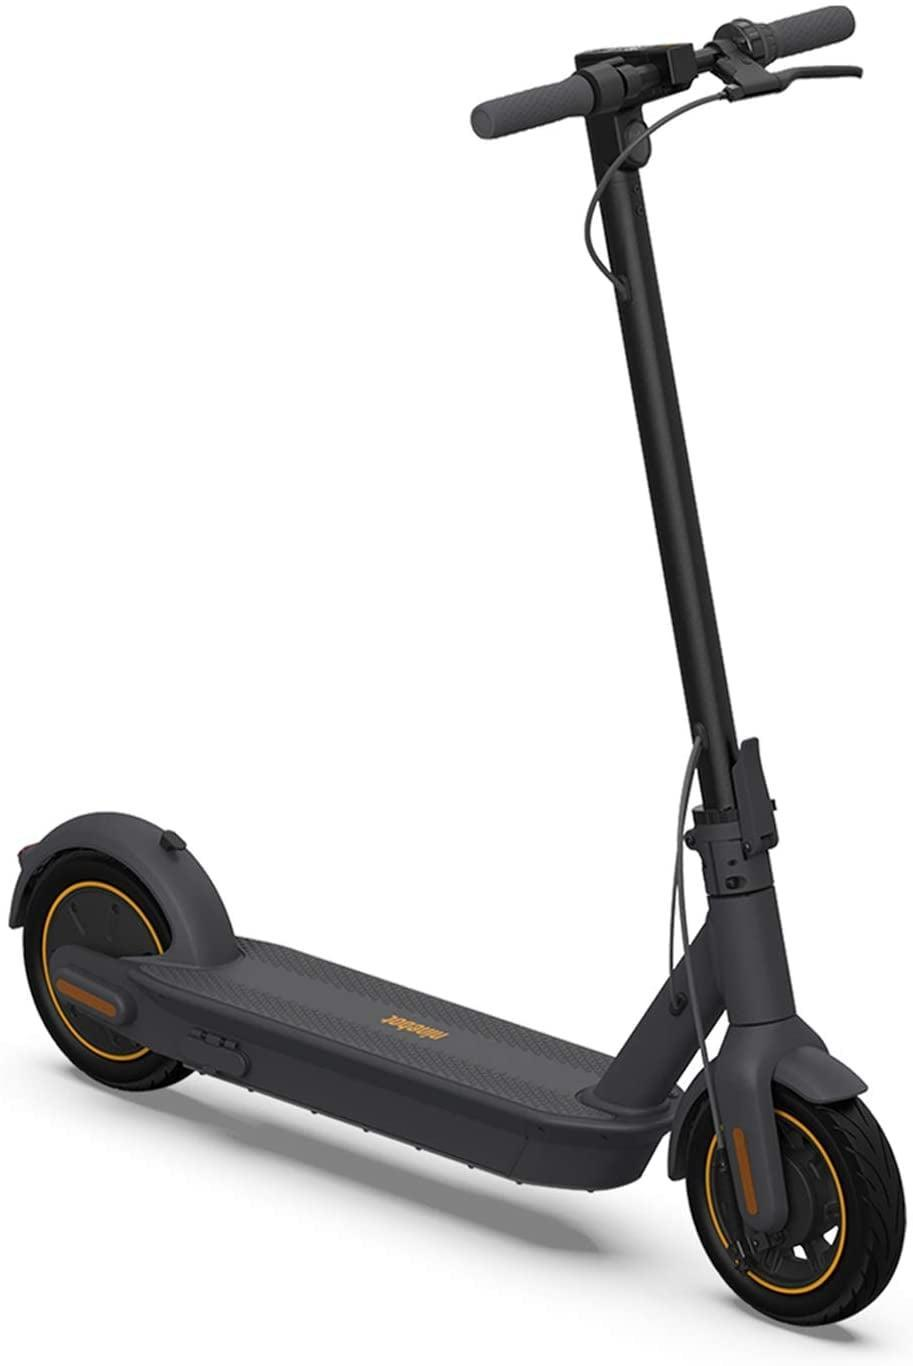 <p>If you want the superpowered scooter, go with this <span>Segway Ninebot MAX Electric Kick Scooter</span> ($800).</p>